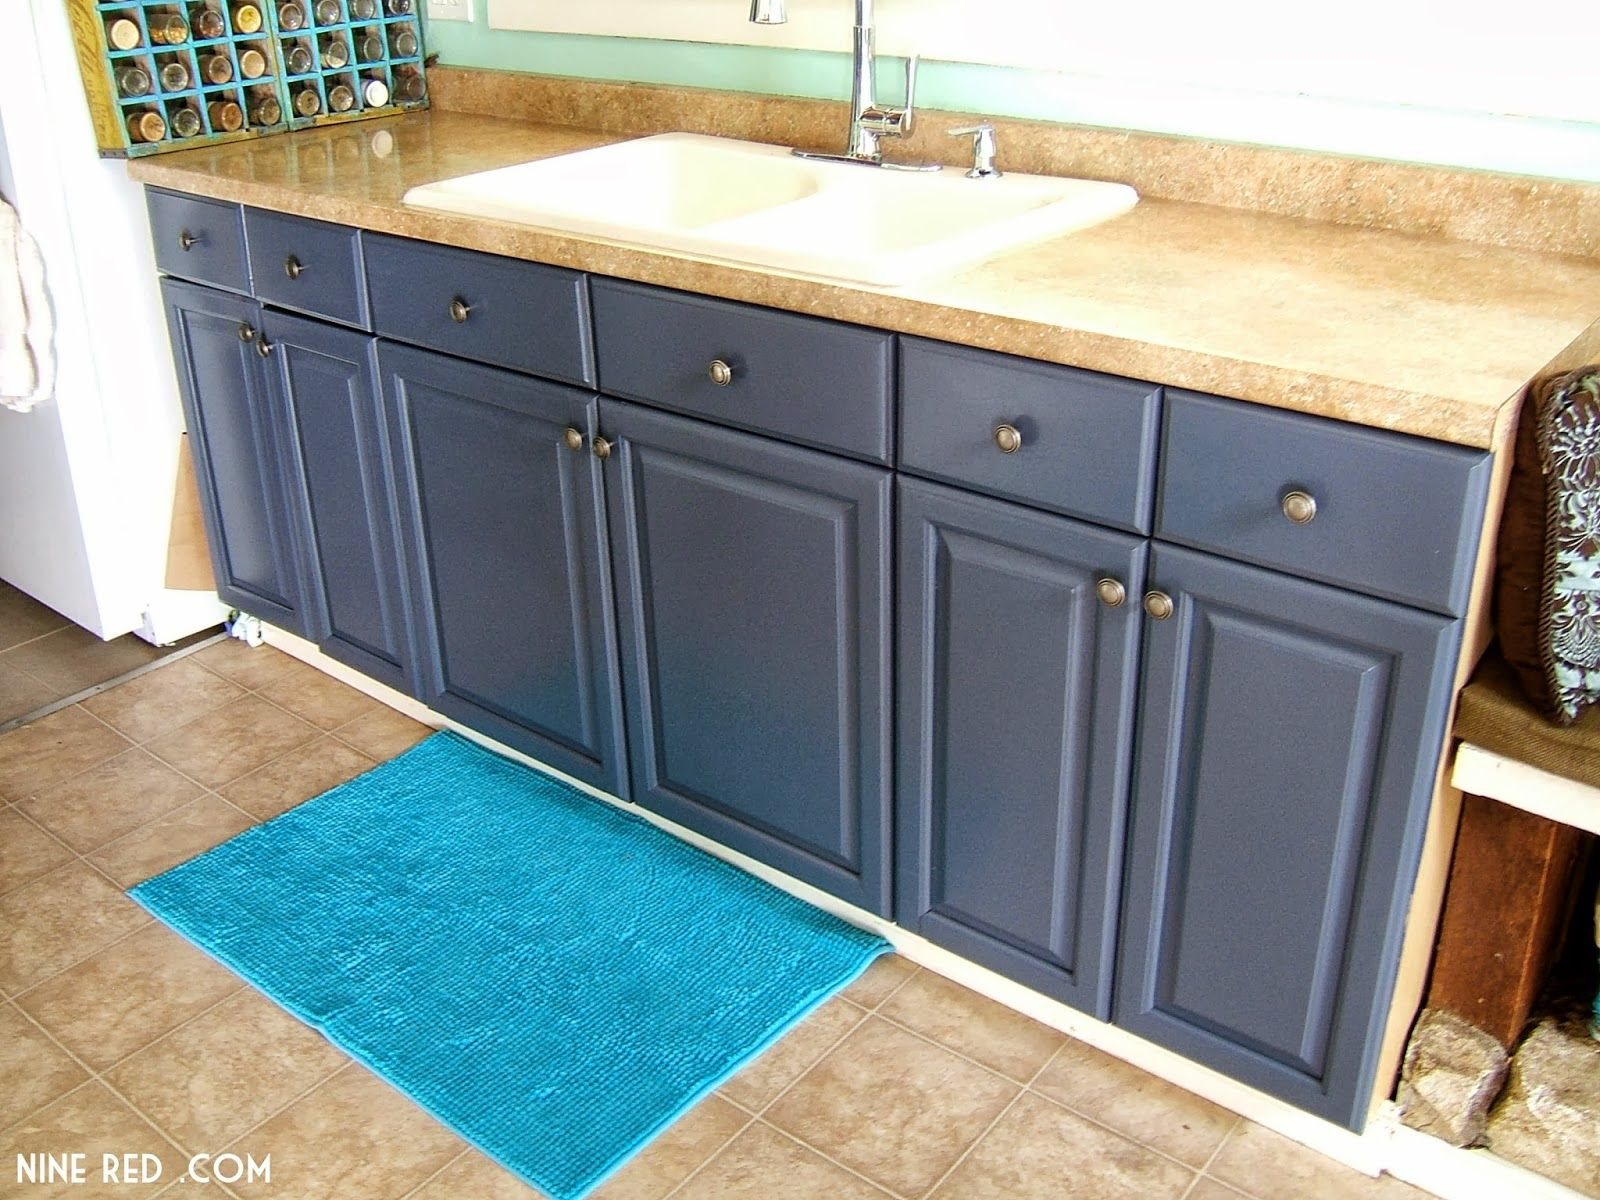 Slate Blue Color On Cabinets Google Search Blue Kitchen Cabinets Kitchen Cabinets Painted Grey Blue Gray Kitchen Cabinets